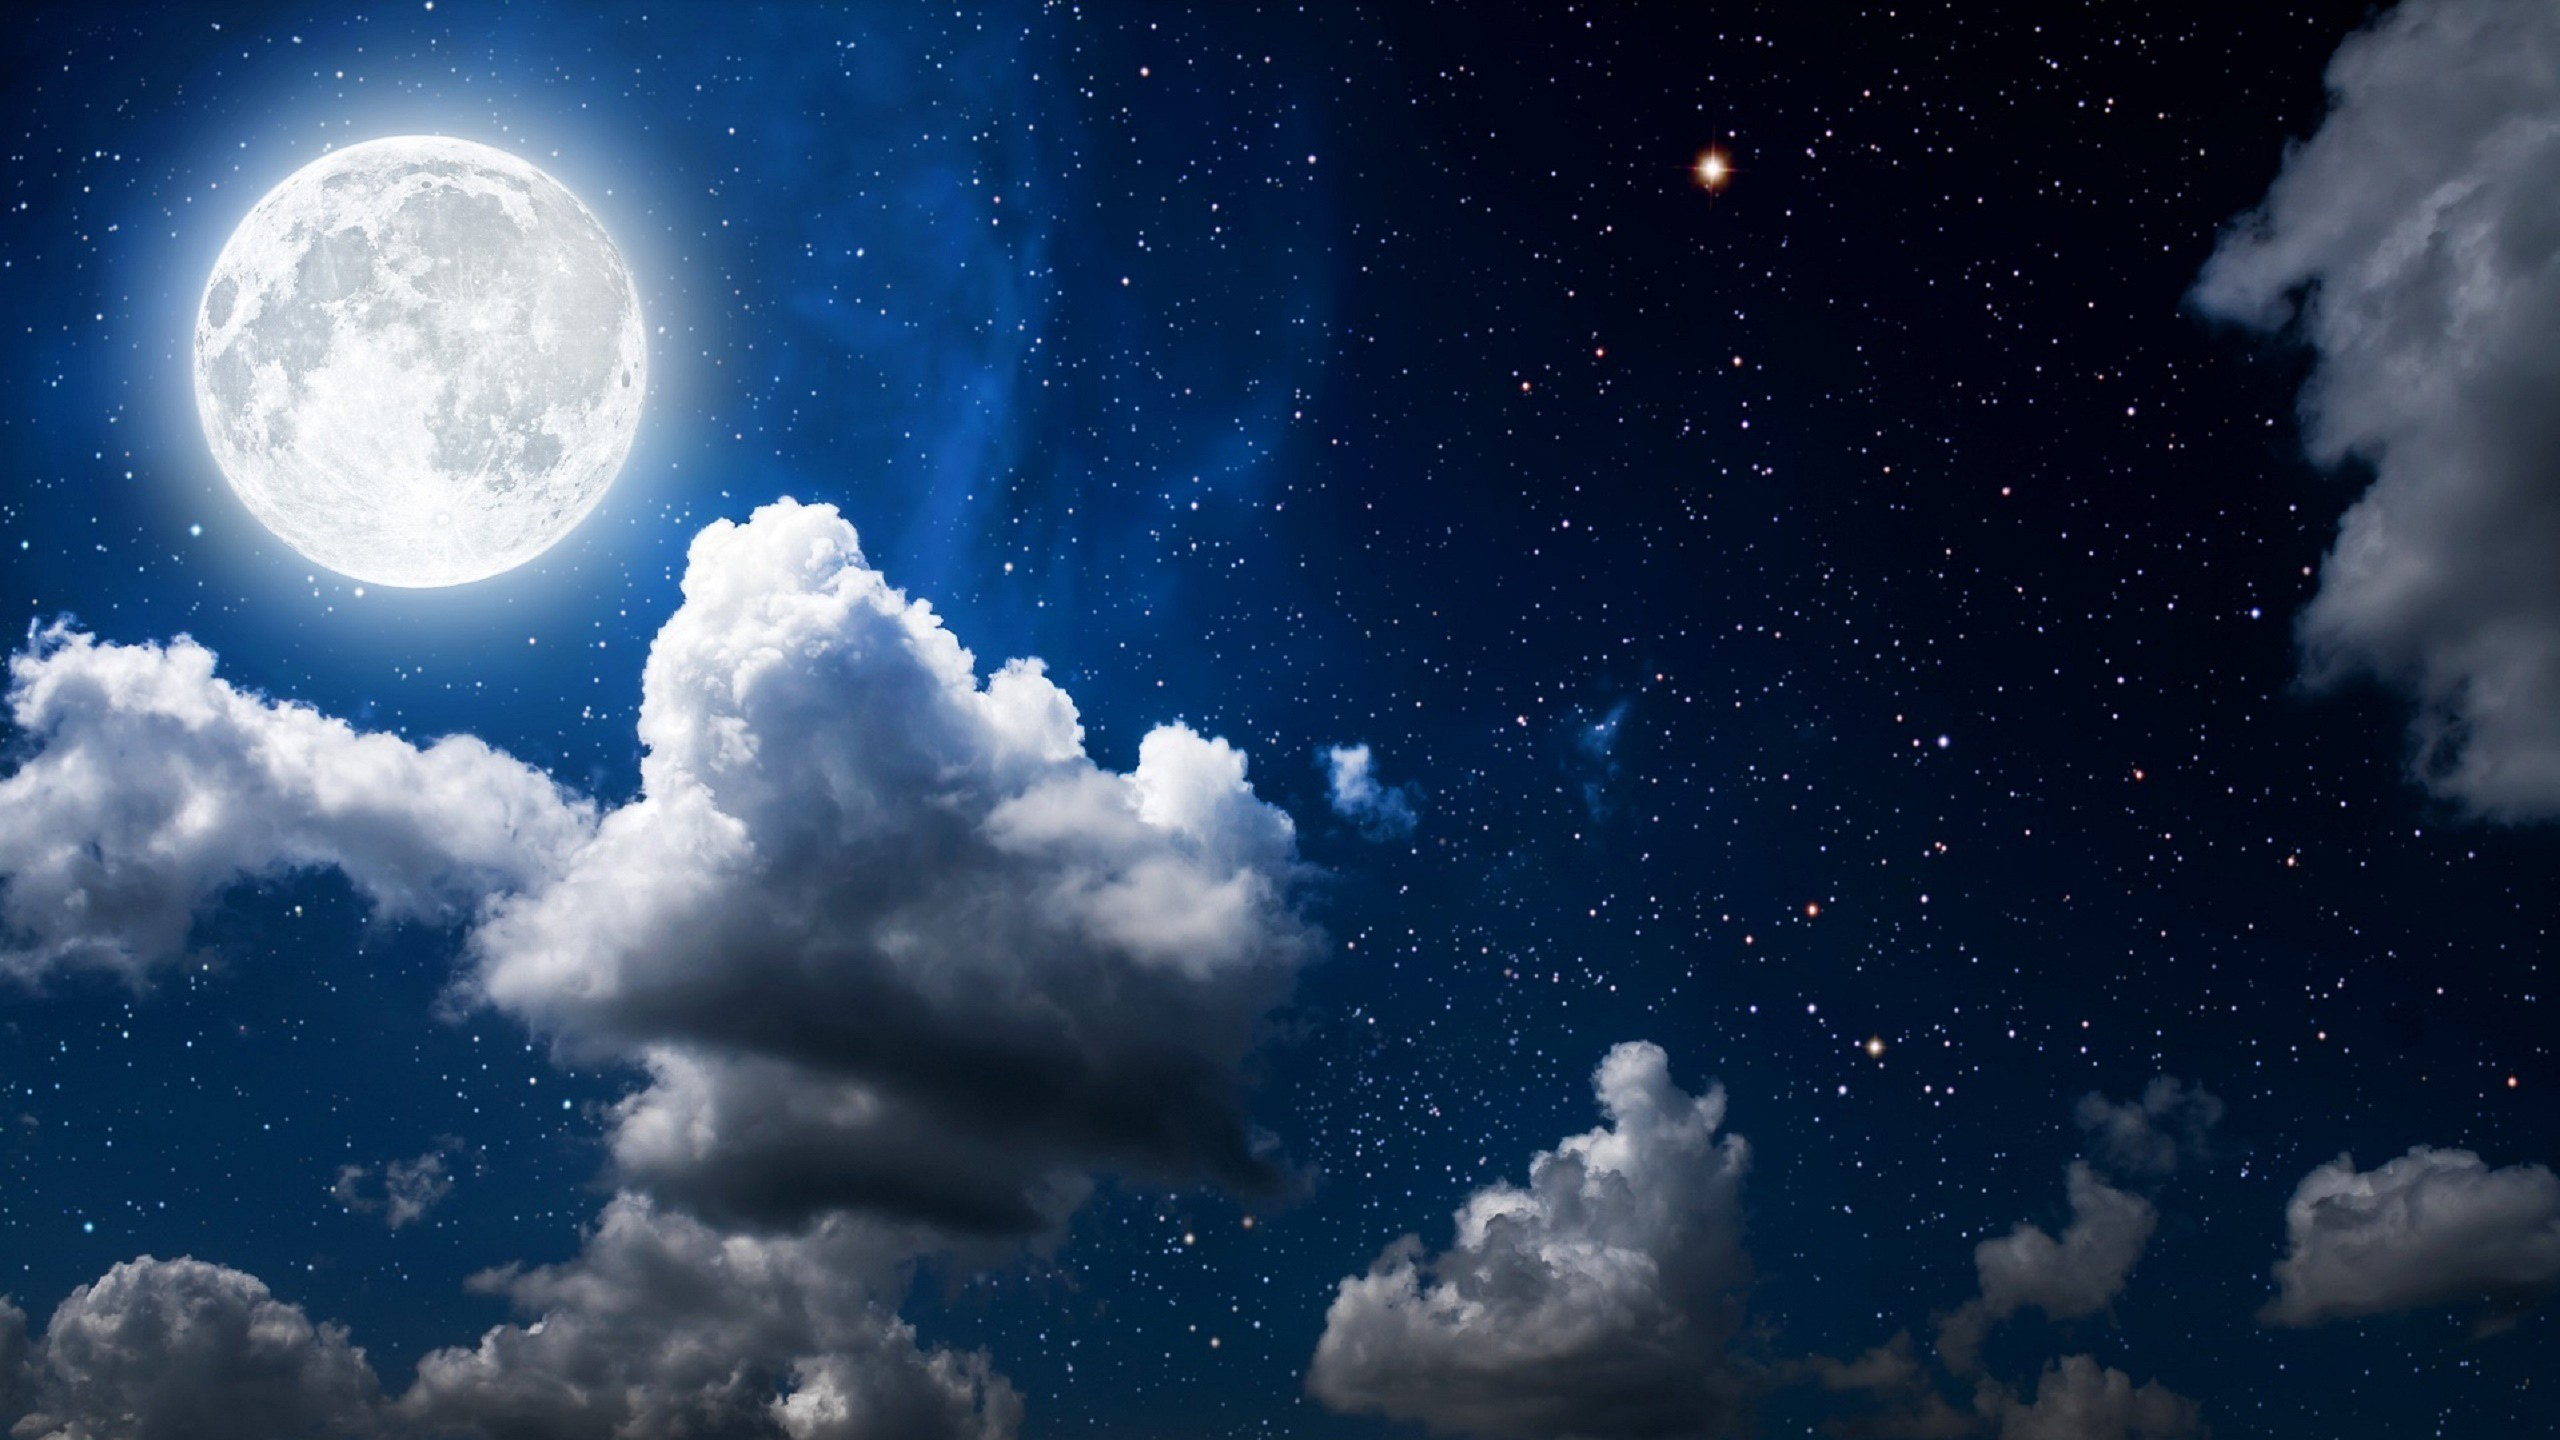 World Beautiful Cars Wallpapers Moon Clouds Dark Sky Wallpapers Hd Wallpapers Id 18374